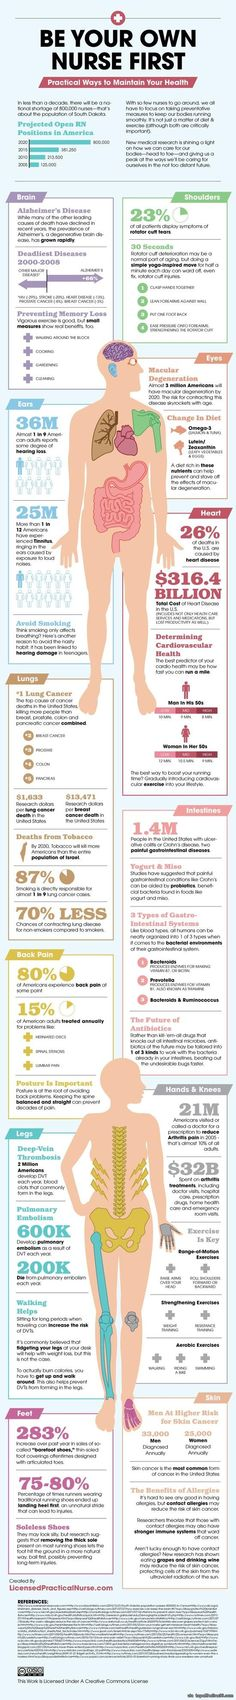 Infographic: Be Your Own Nurse First via topoftheline99.com